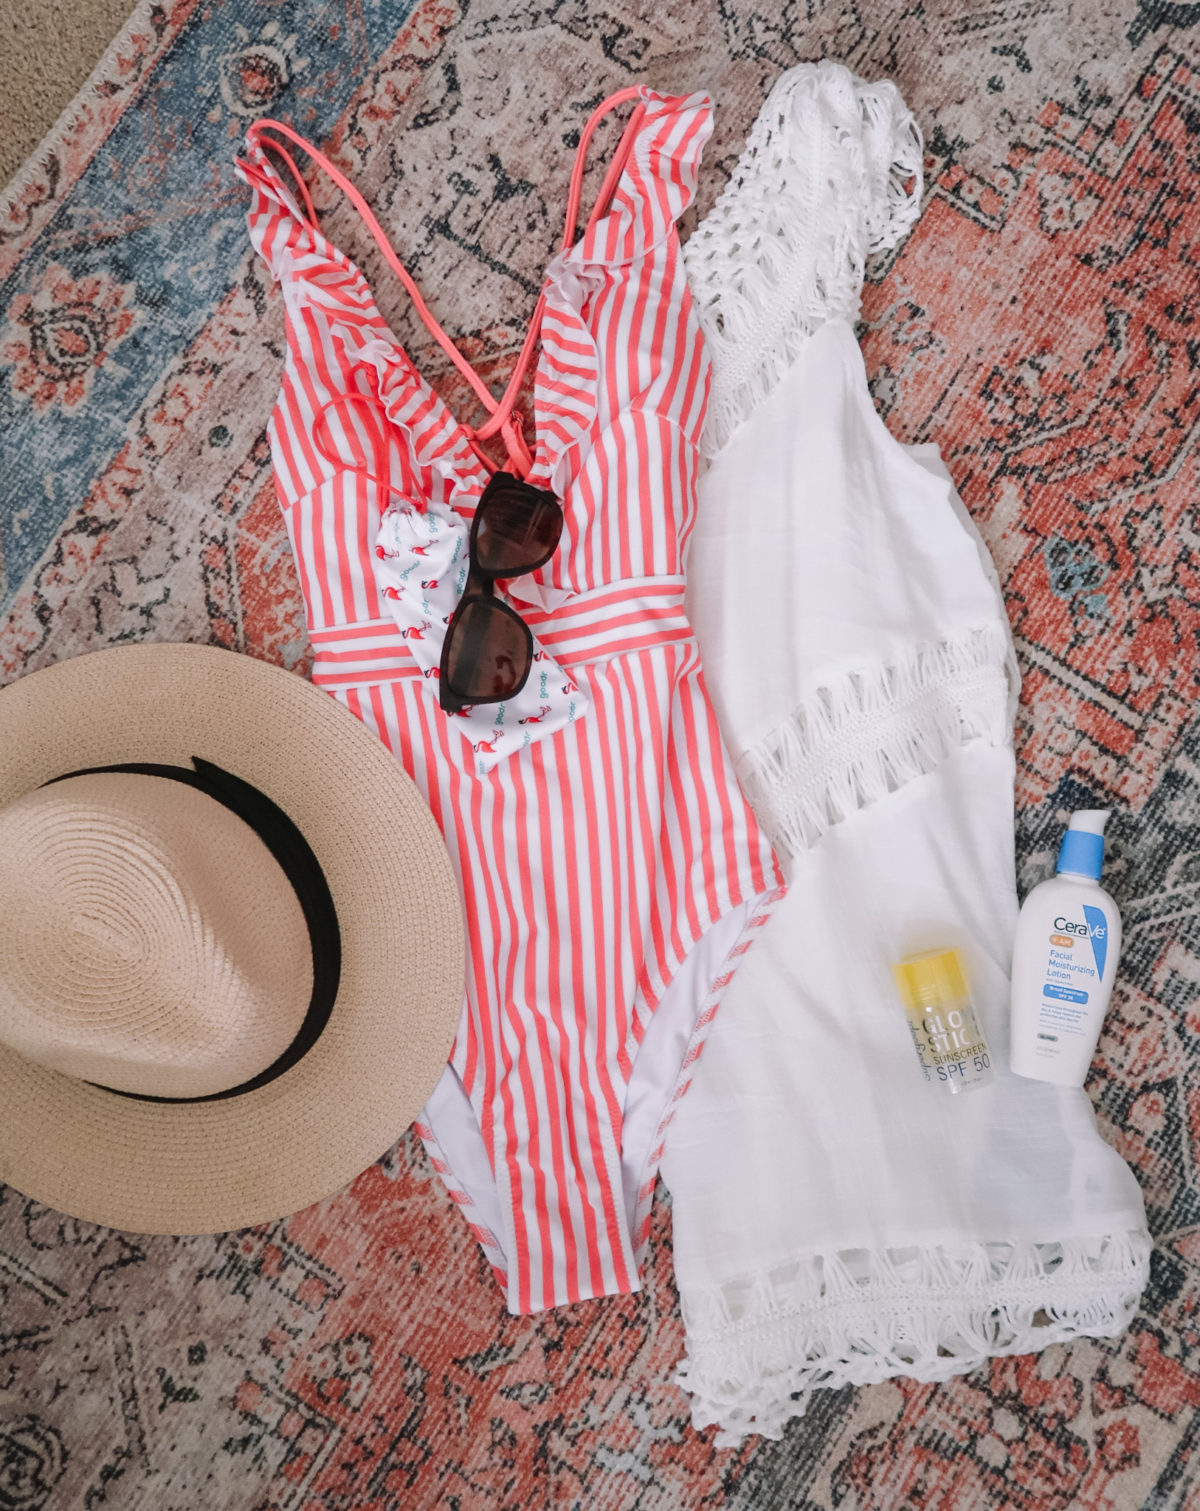 Packing Essentials, Stripe Swimsuit, CoverUp, Hat, Sunscreen, Lotion